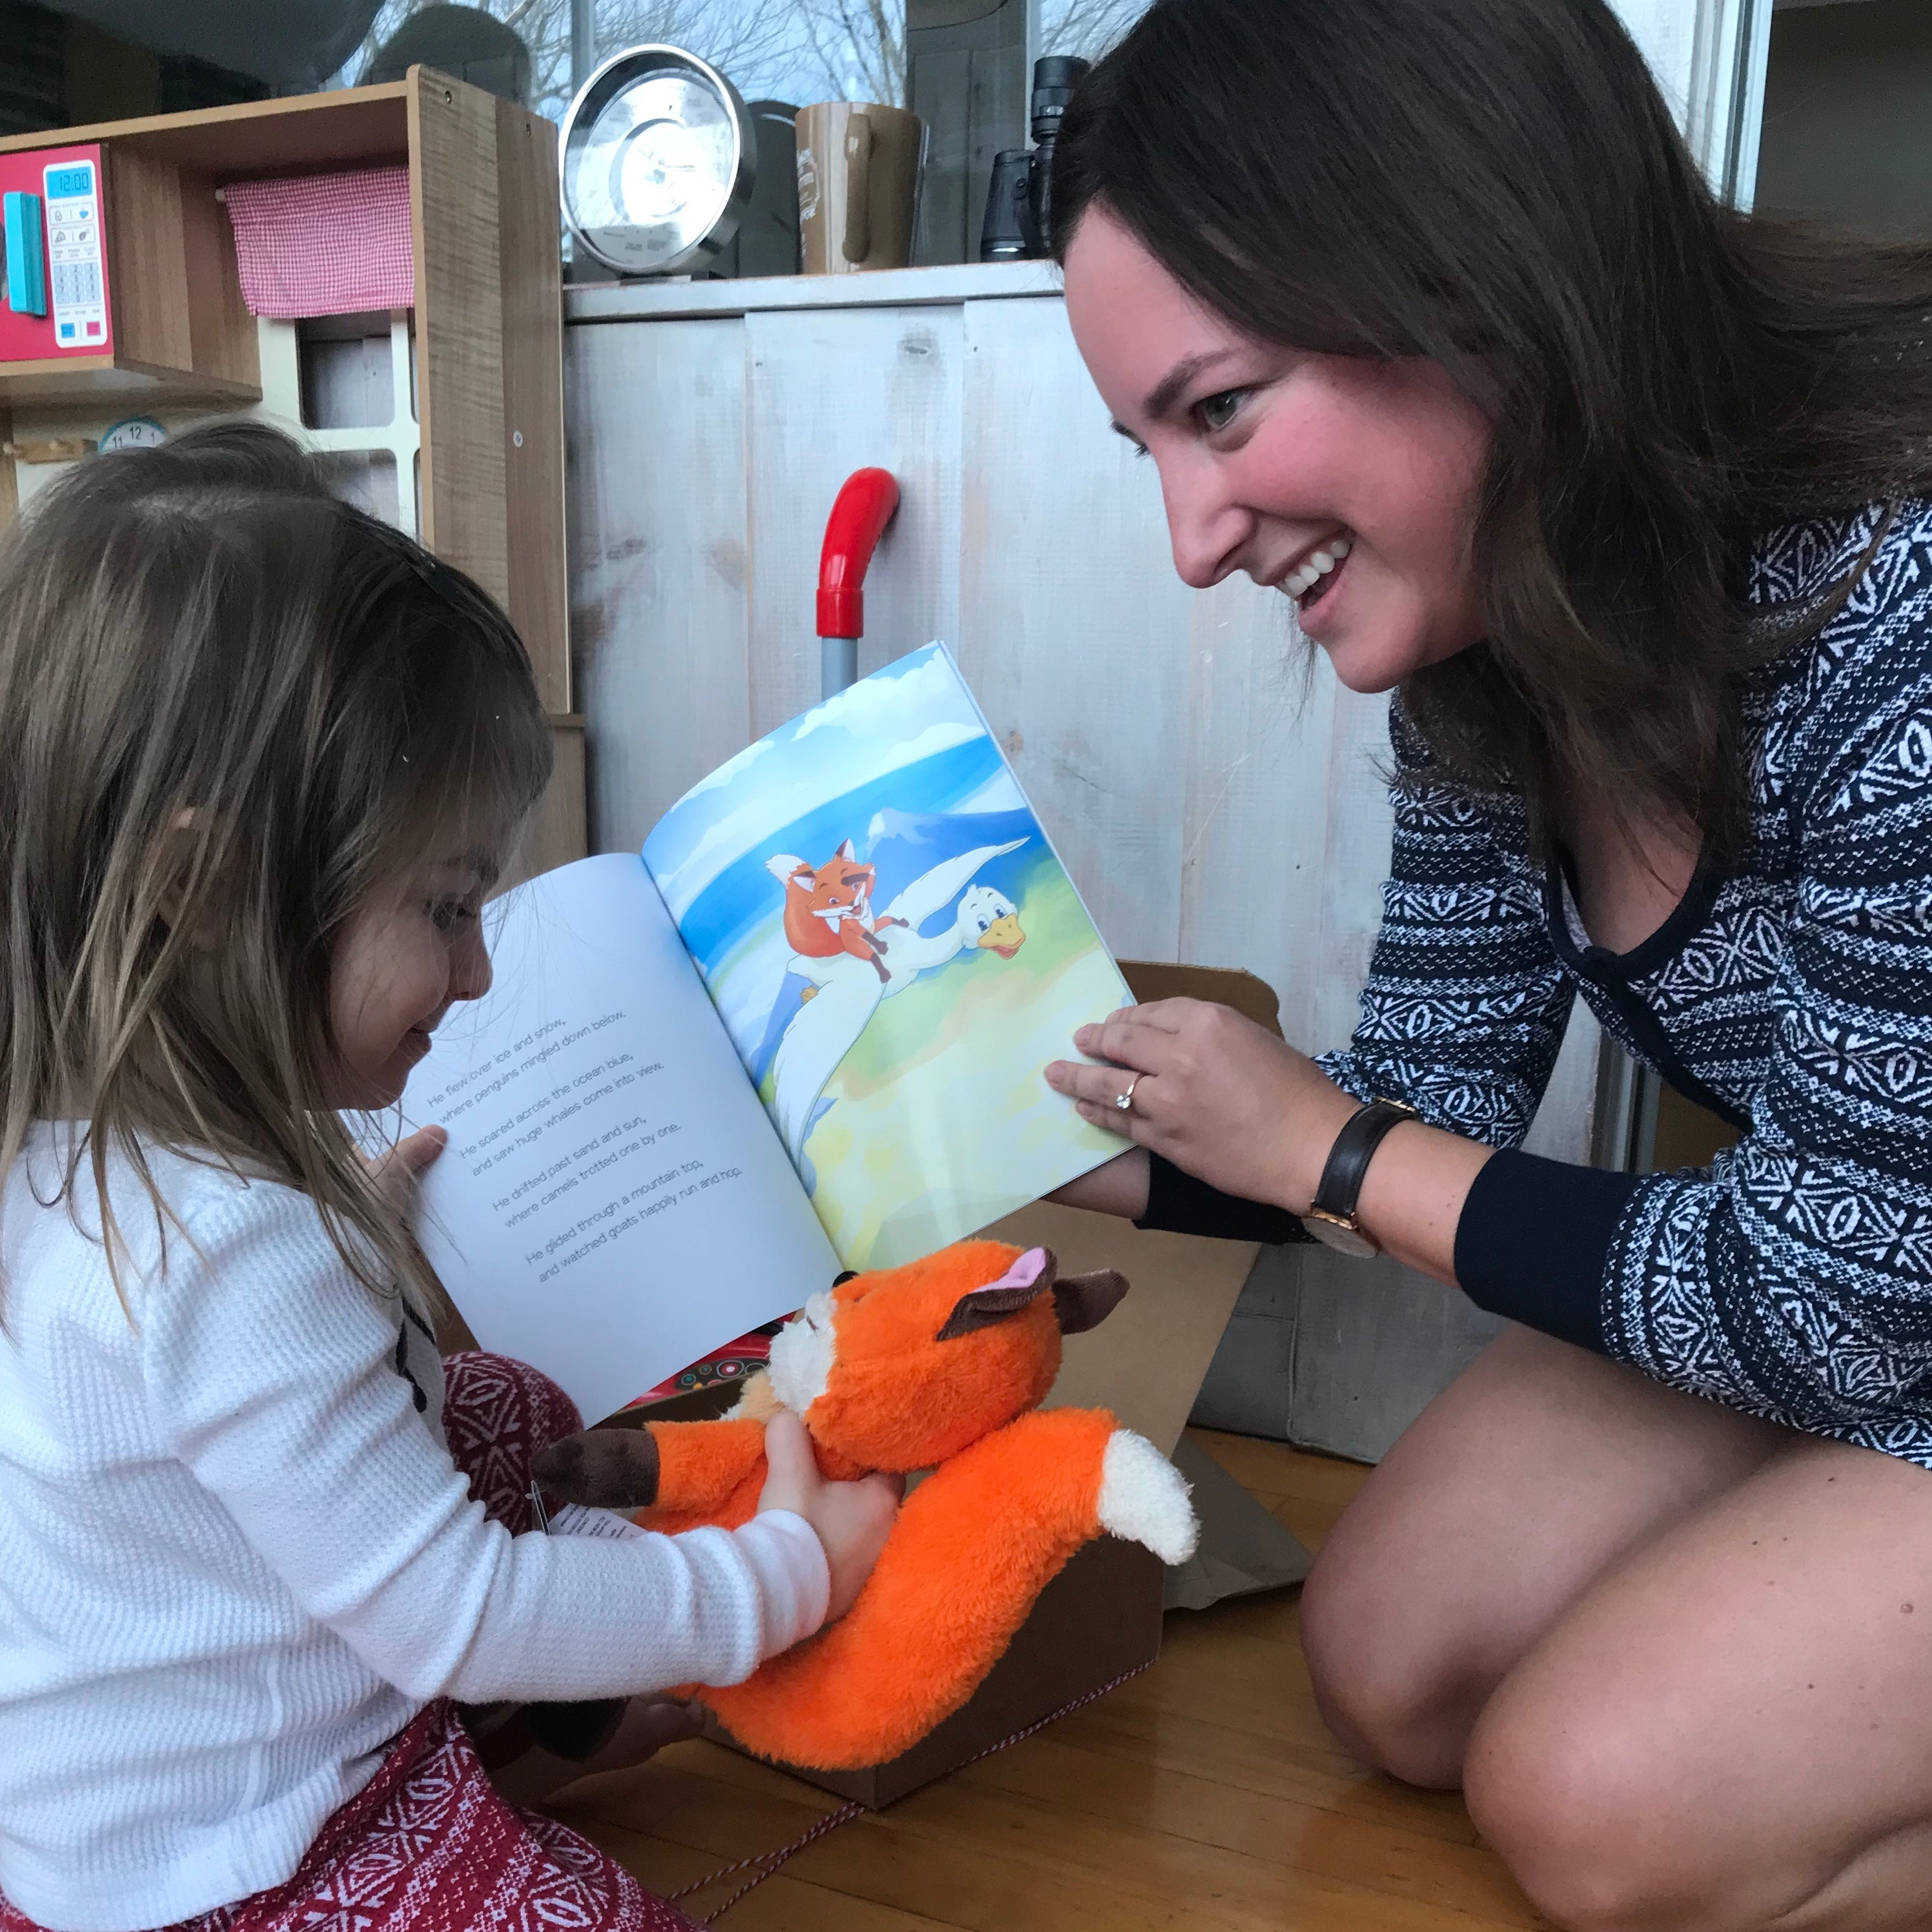 A woman and a little girl reading Hey Rocco together